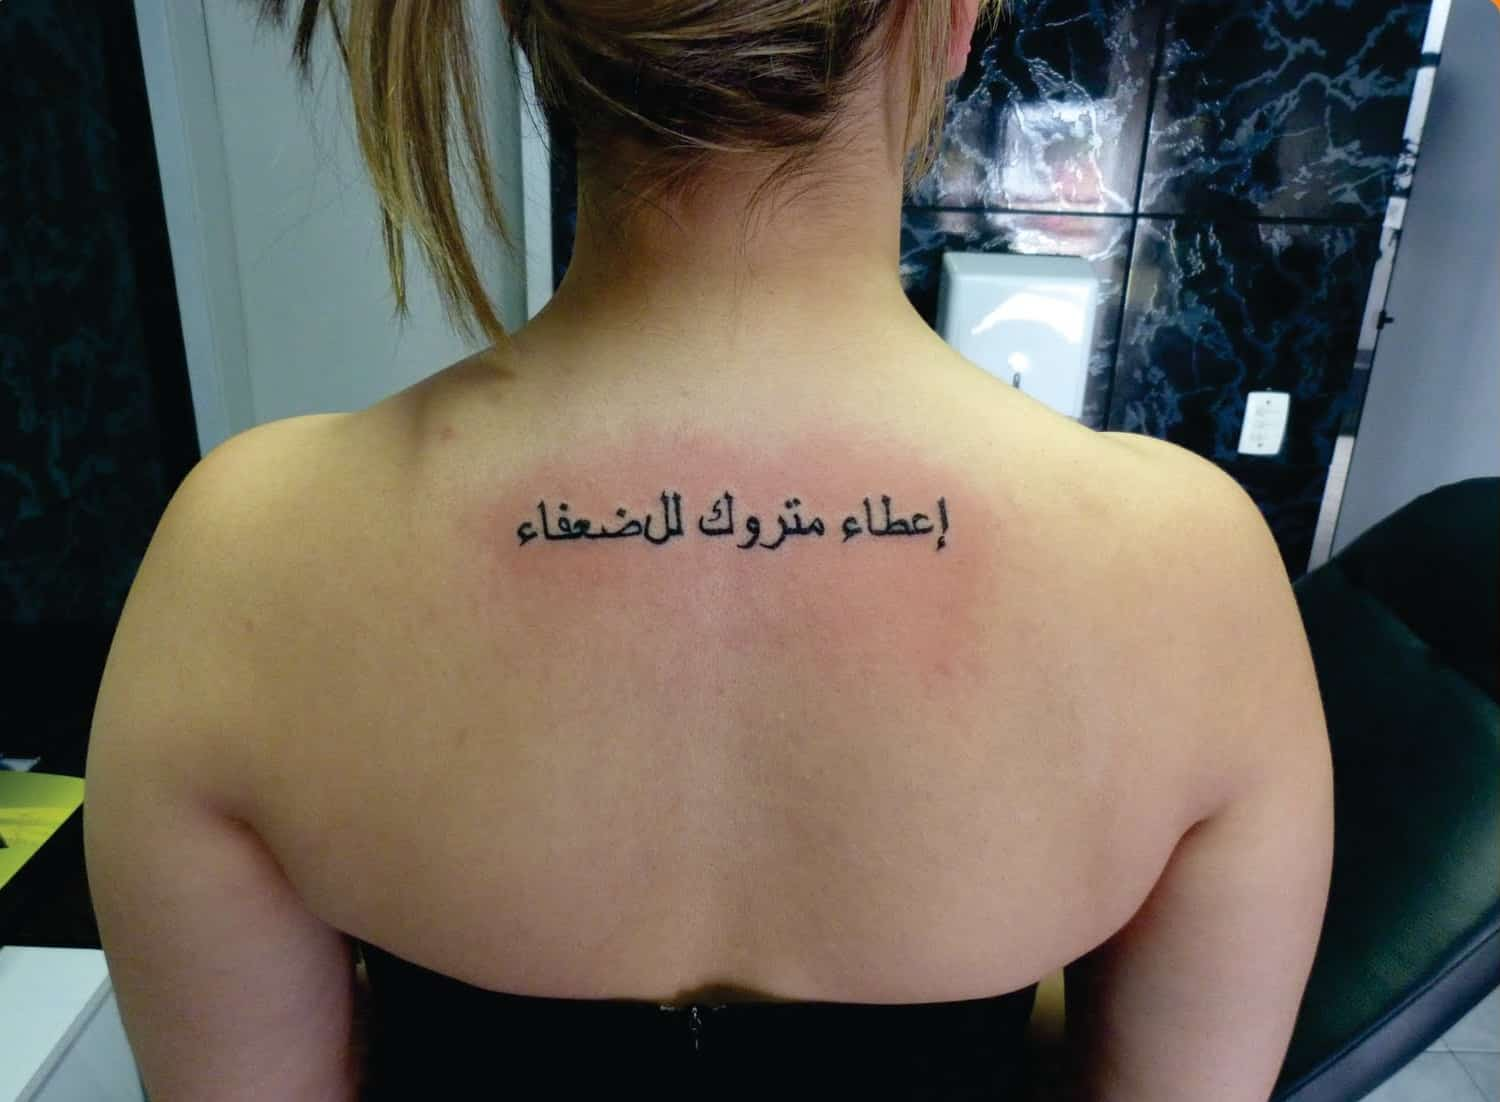 Arabic Calligraphy Tattoo Meanings 65 Cool Arabic Tattoos Ideas With Meanings And Pictures